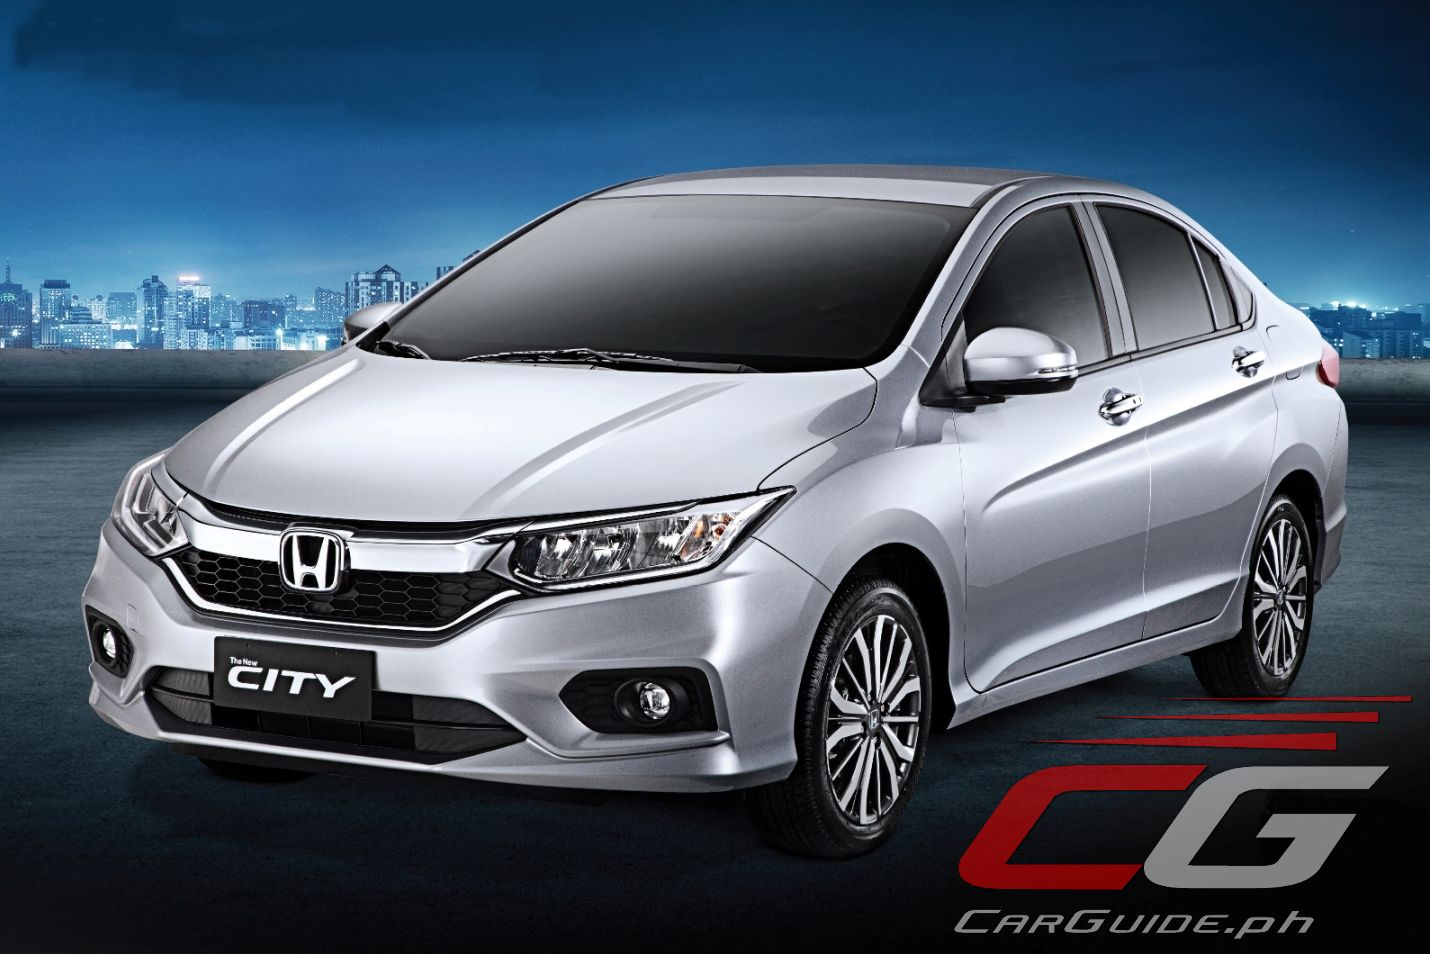 Marvelous Honda Cars Philippines Refreshes The City Sedan For 2017 (2018 Model Year).  Hondau0027s Best Selling Offering In The Country, The 2018 City Exhibits A  High Tech ...